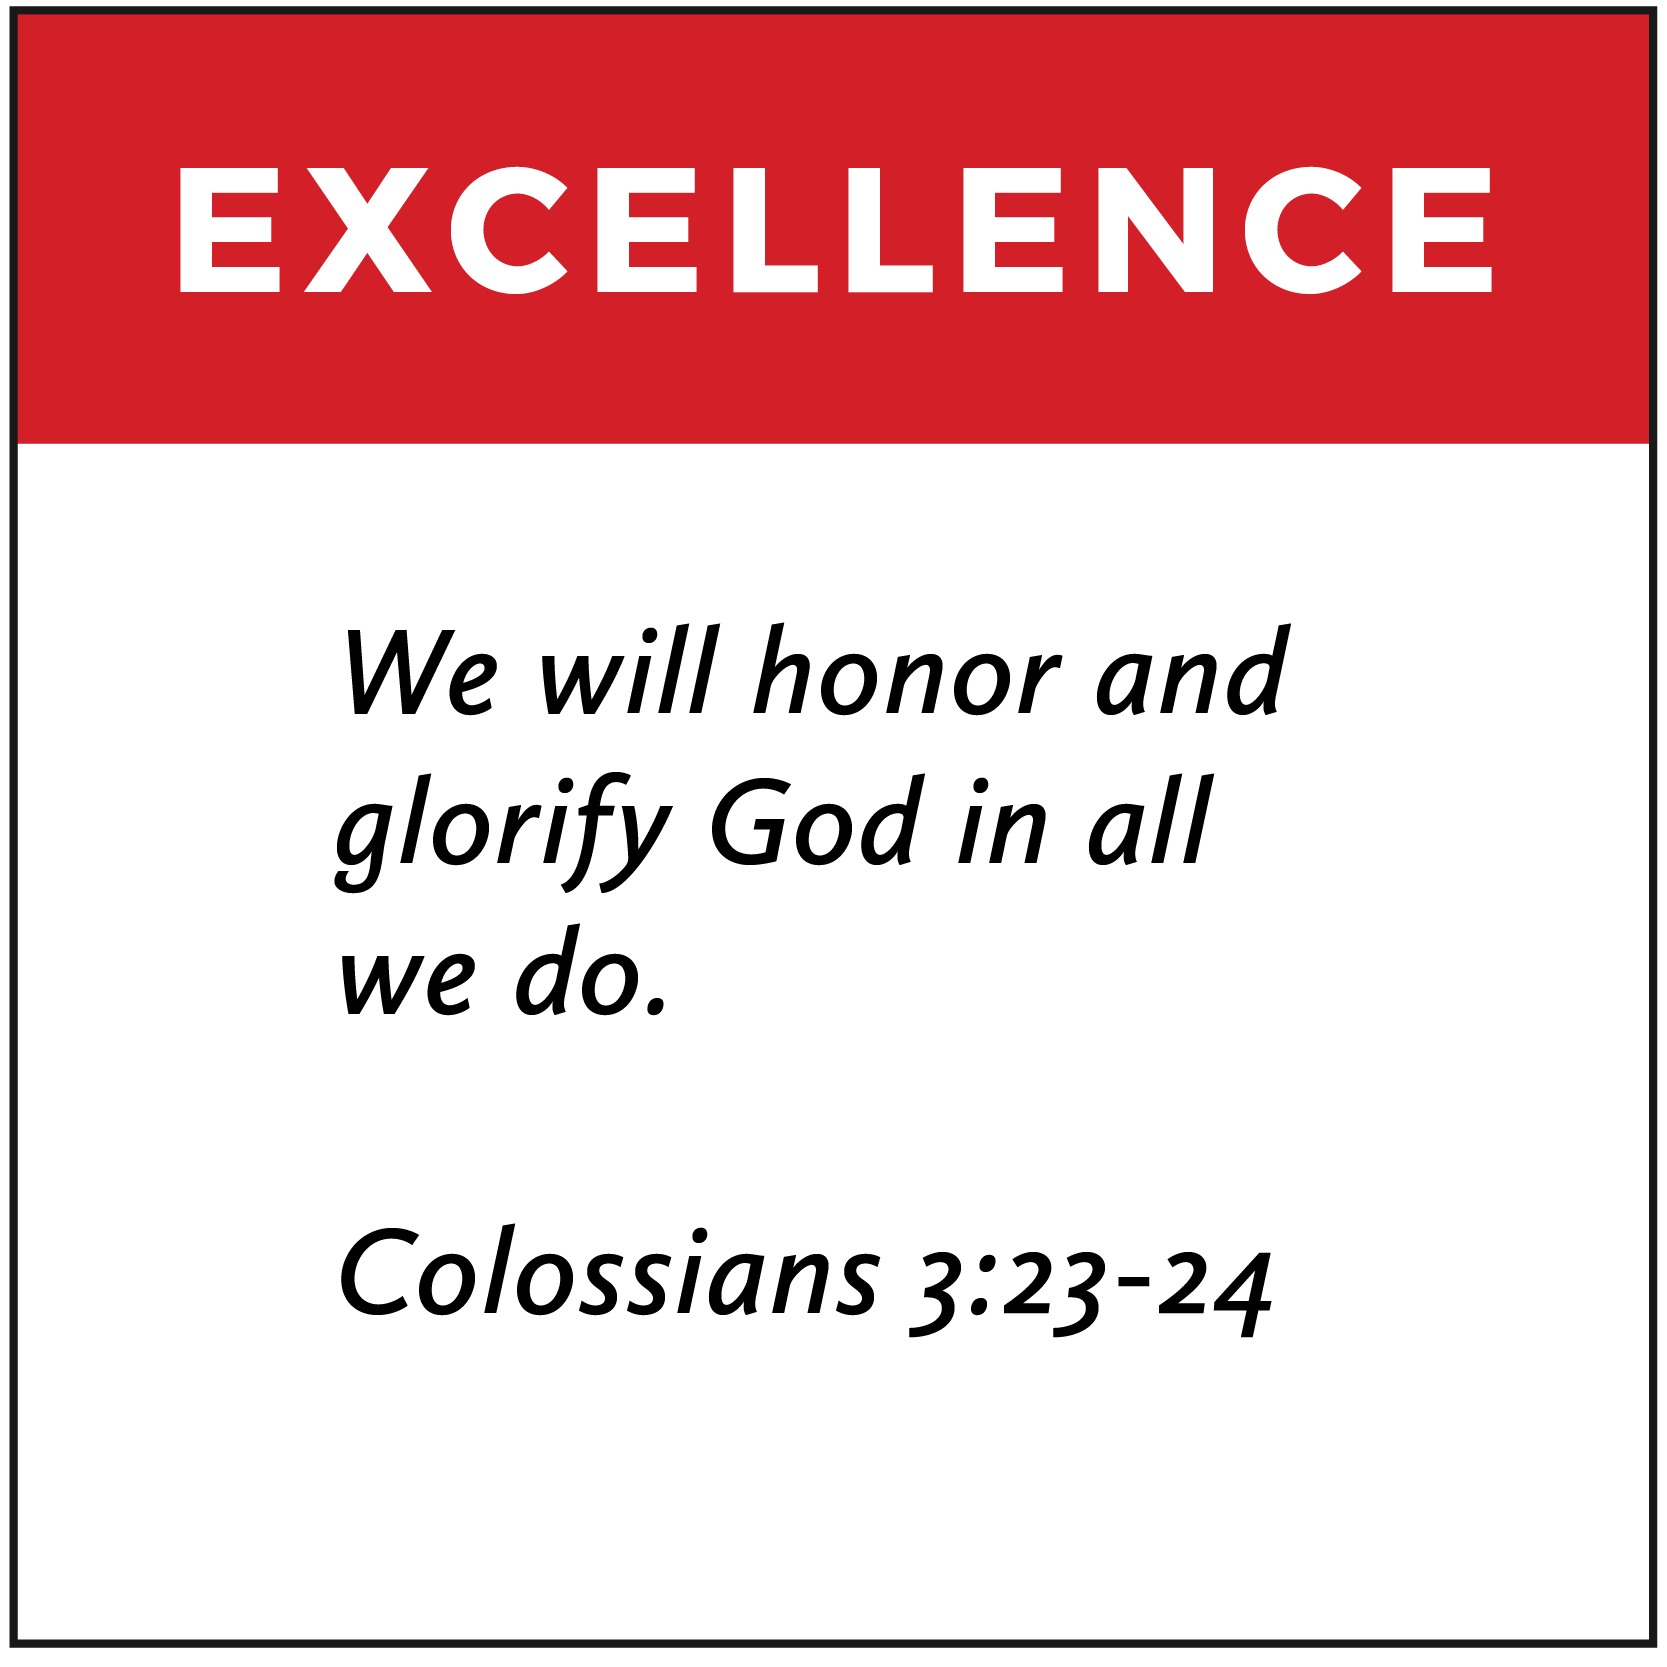 Excellence | FCA Values